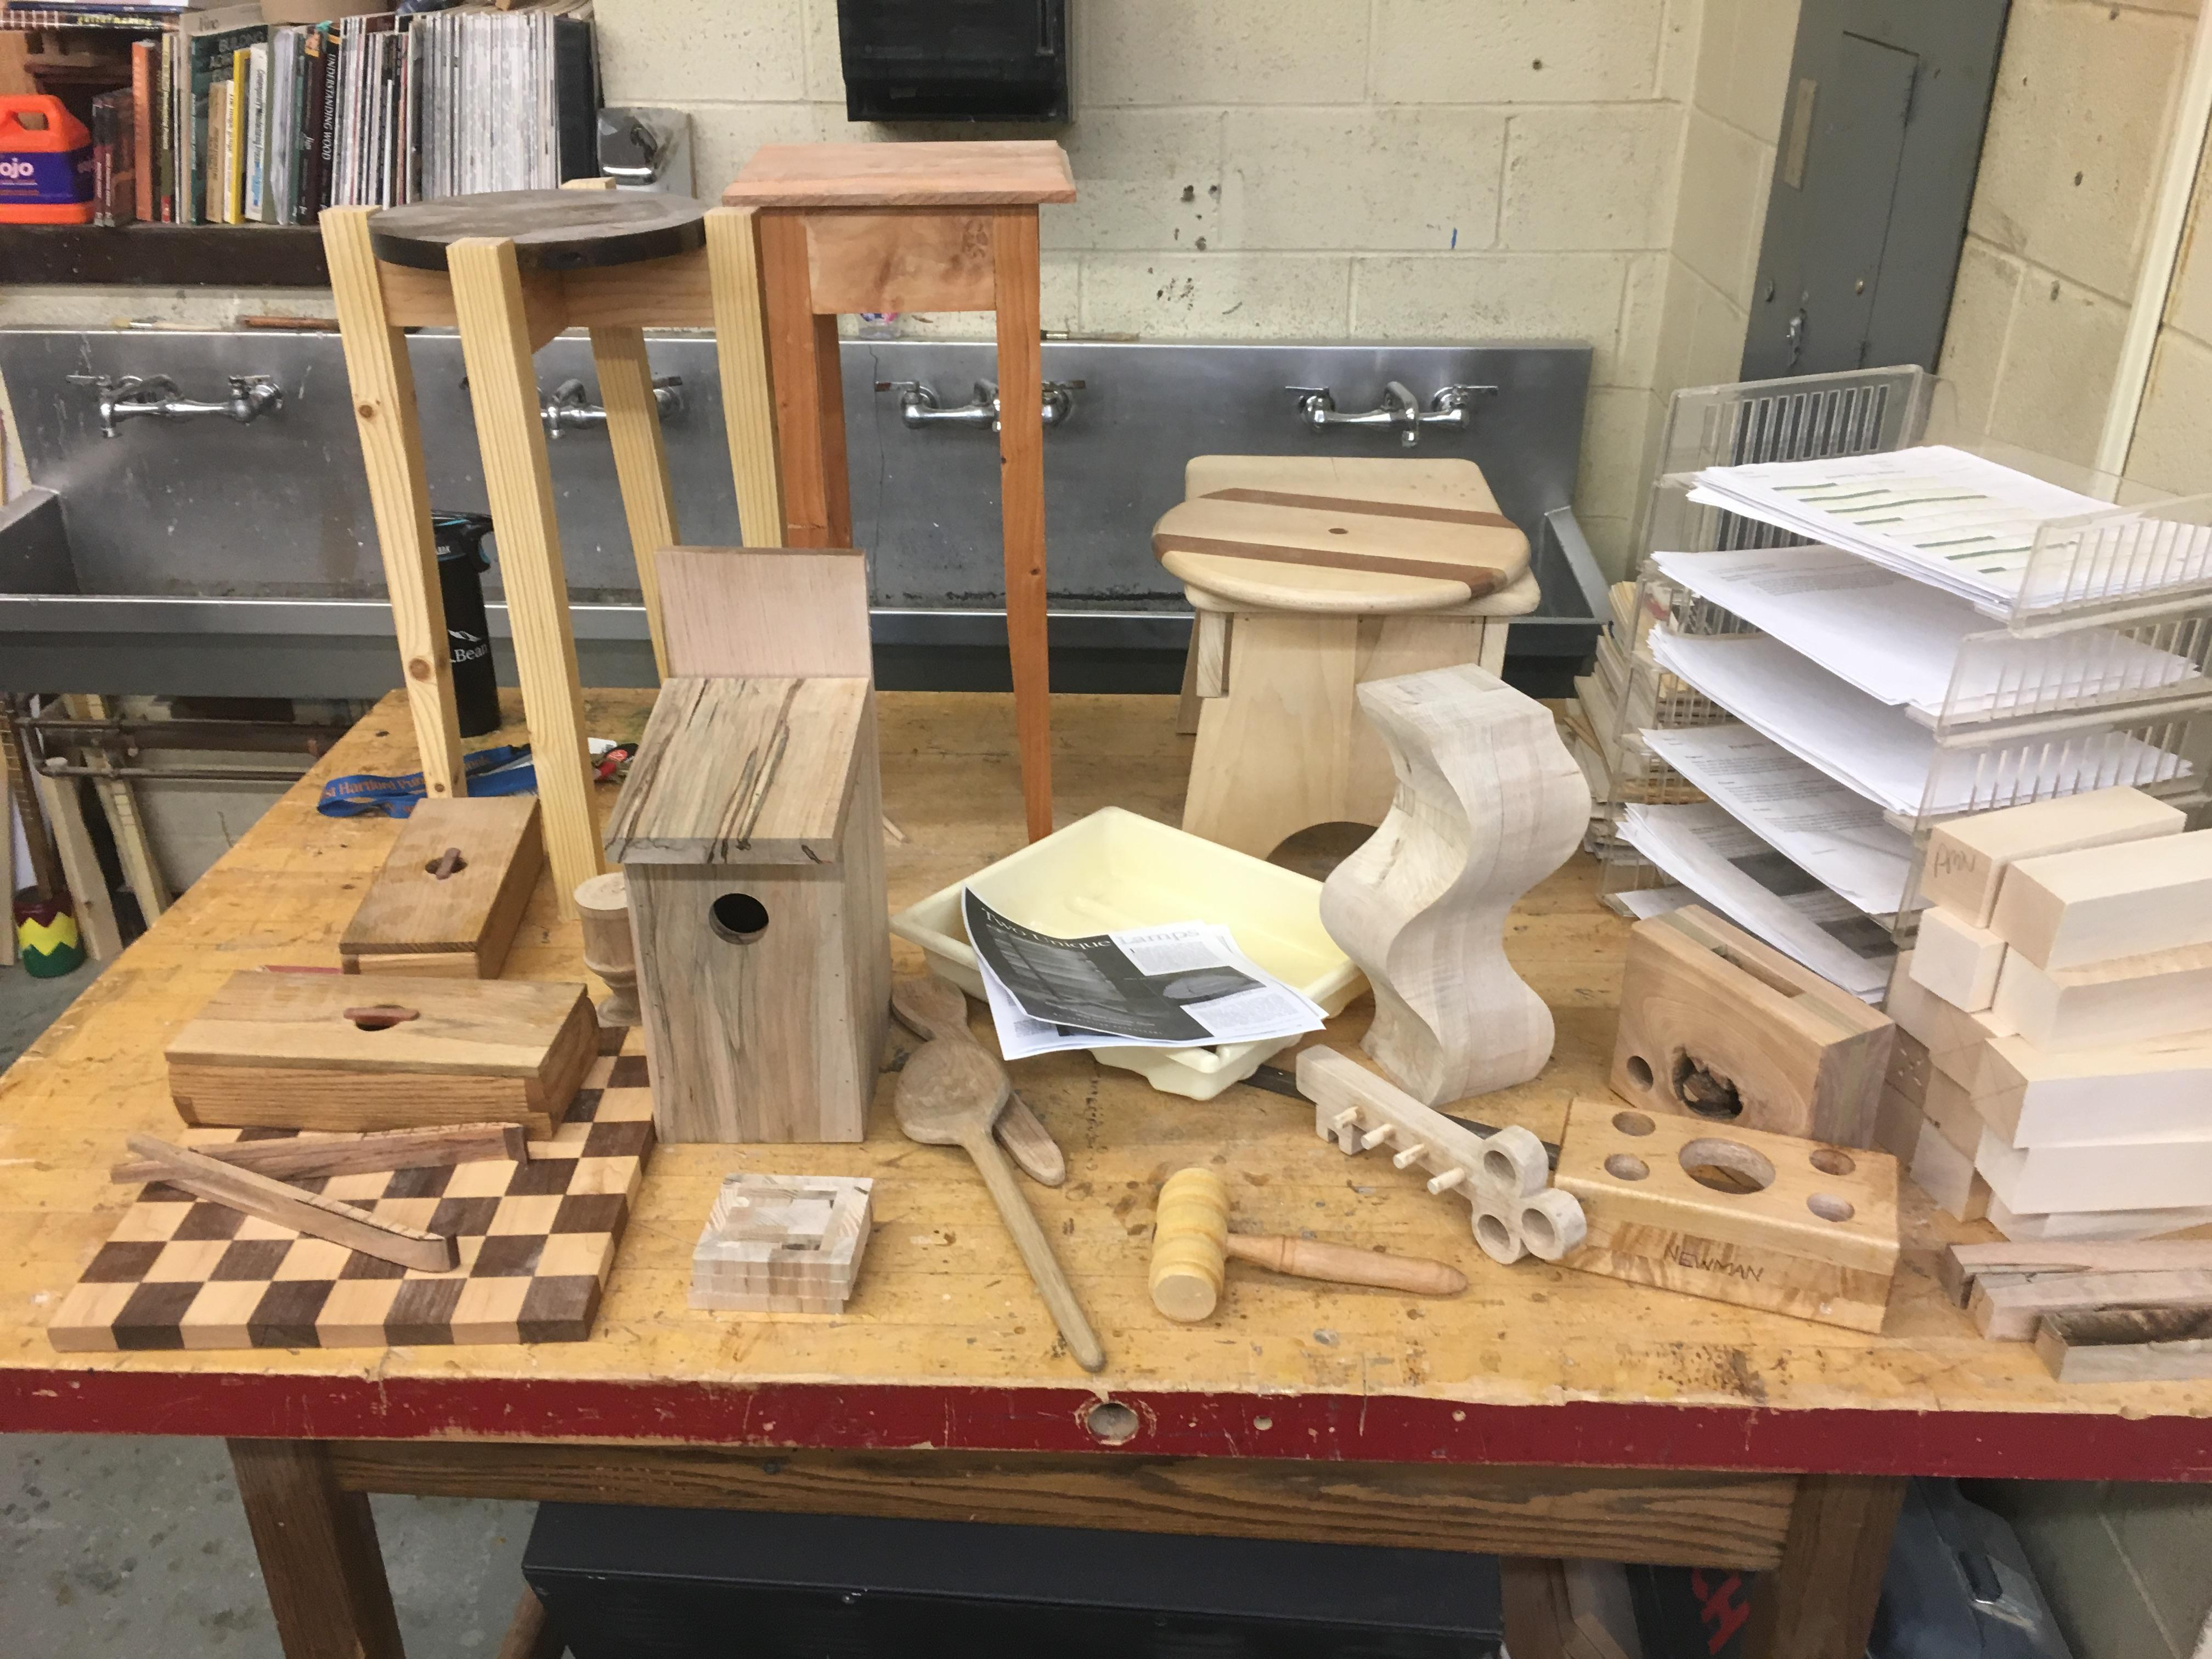 Photograph displays some of the projects a Woodworking student can make.